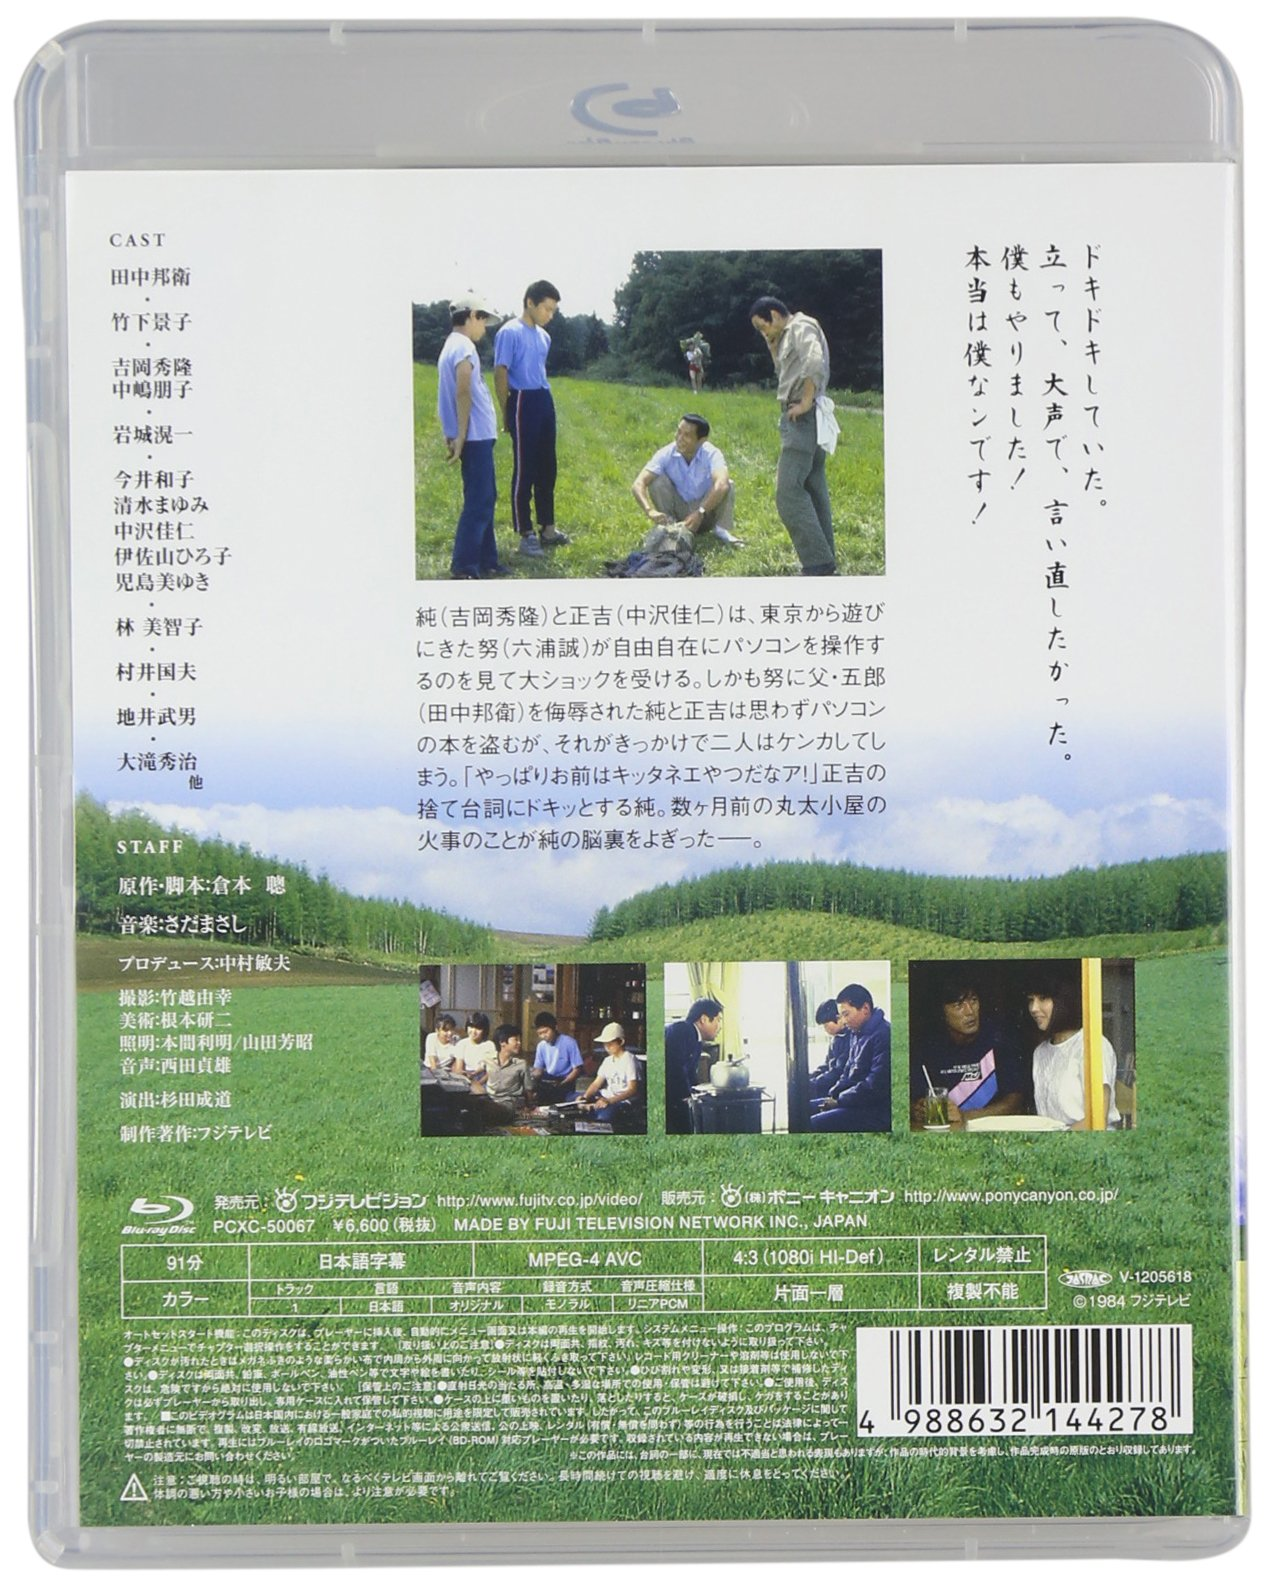 Japanese TV Series - Kita No Kuni Kara 84' Natsu [Japan BD] PCXC-50067 by